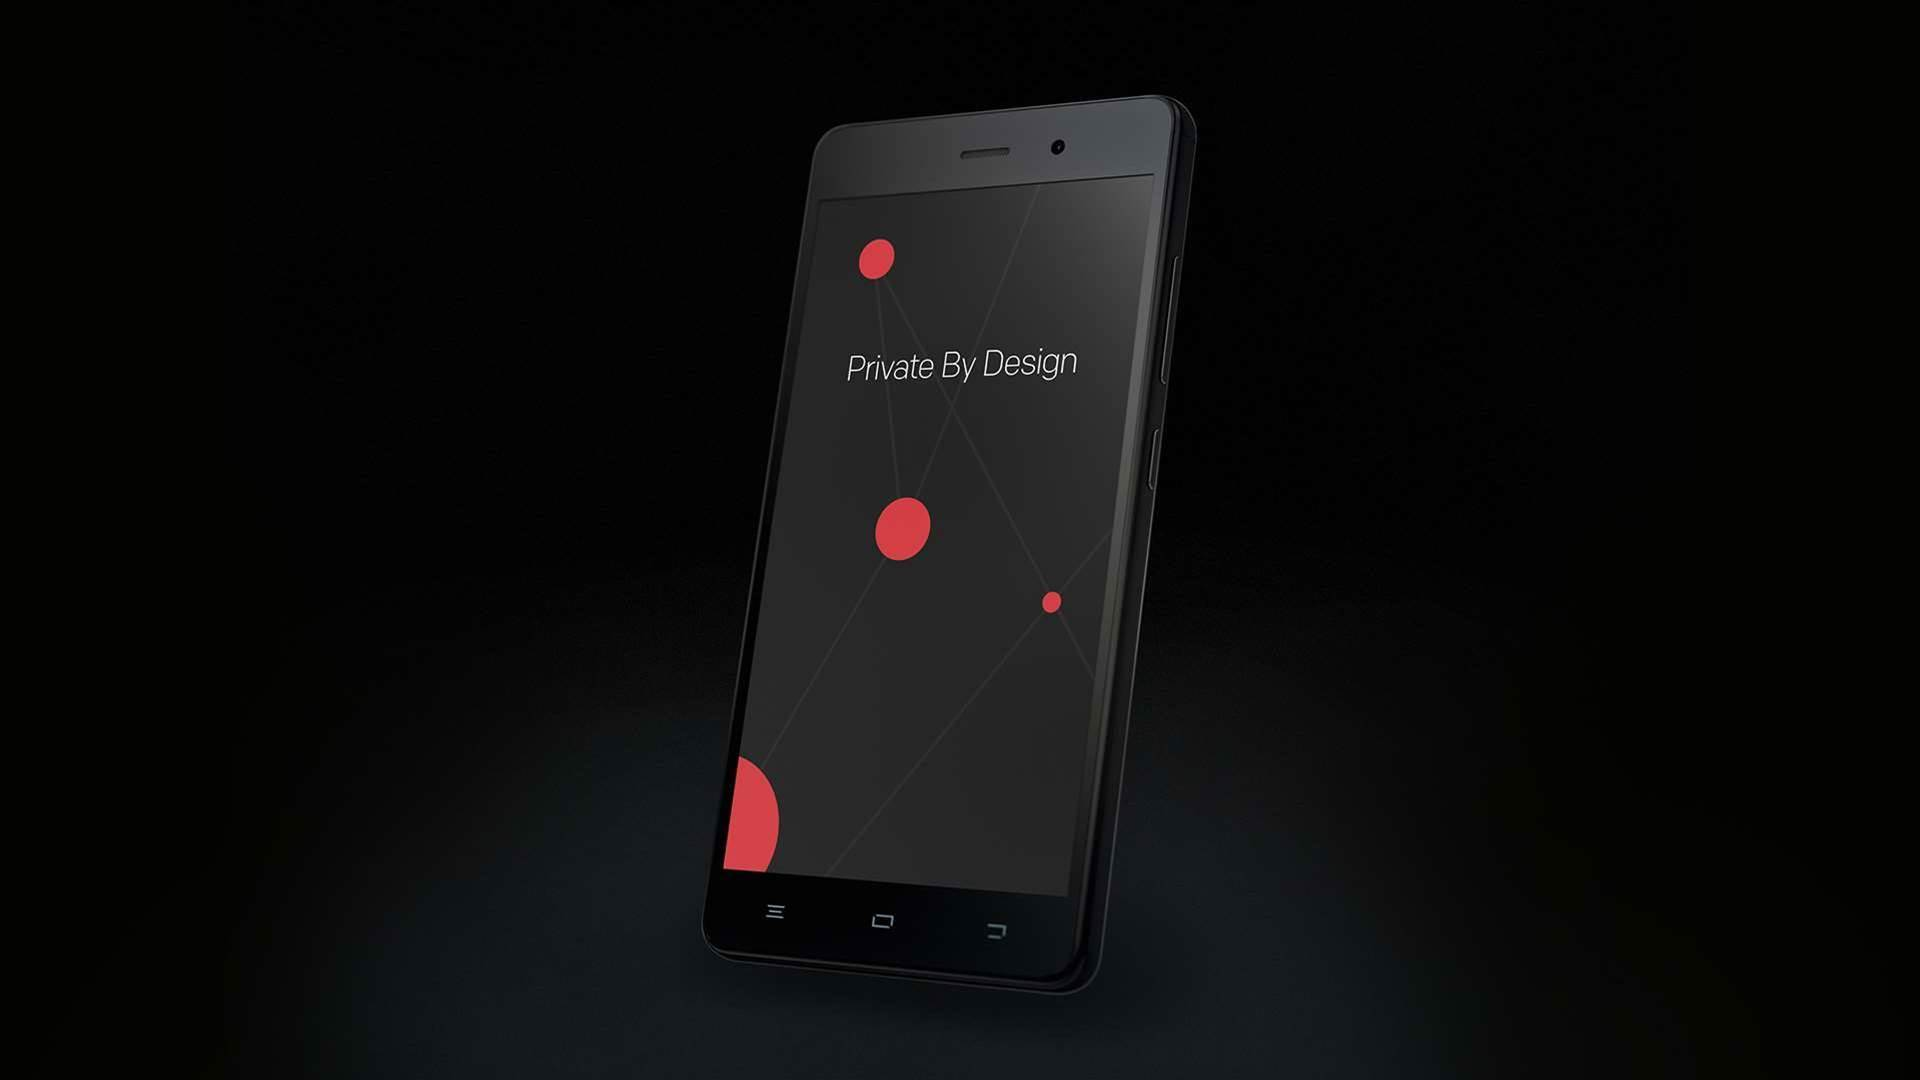 Blackphone's new platform targets 'enterprise privacy'